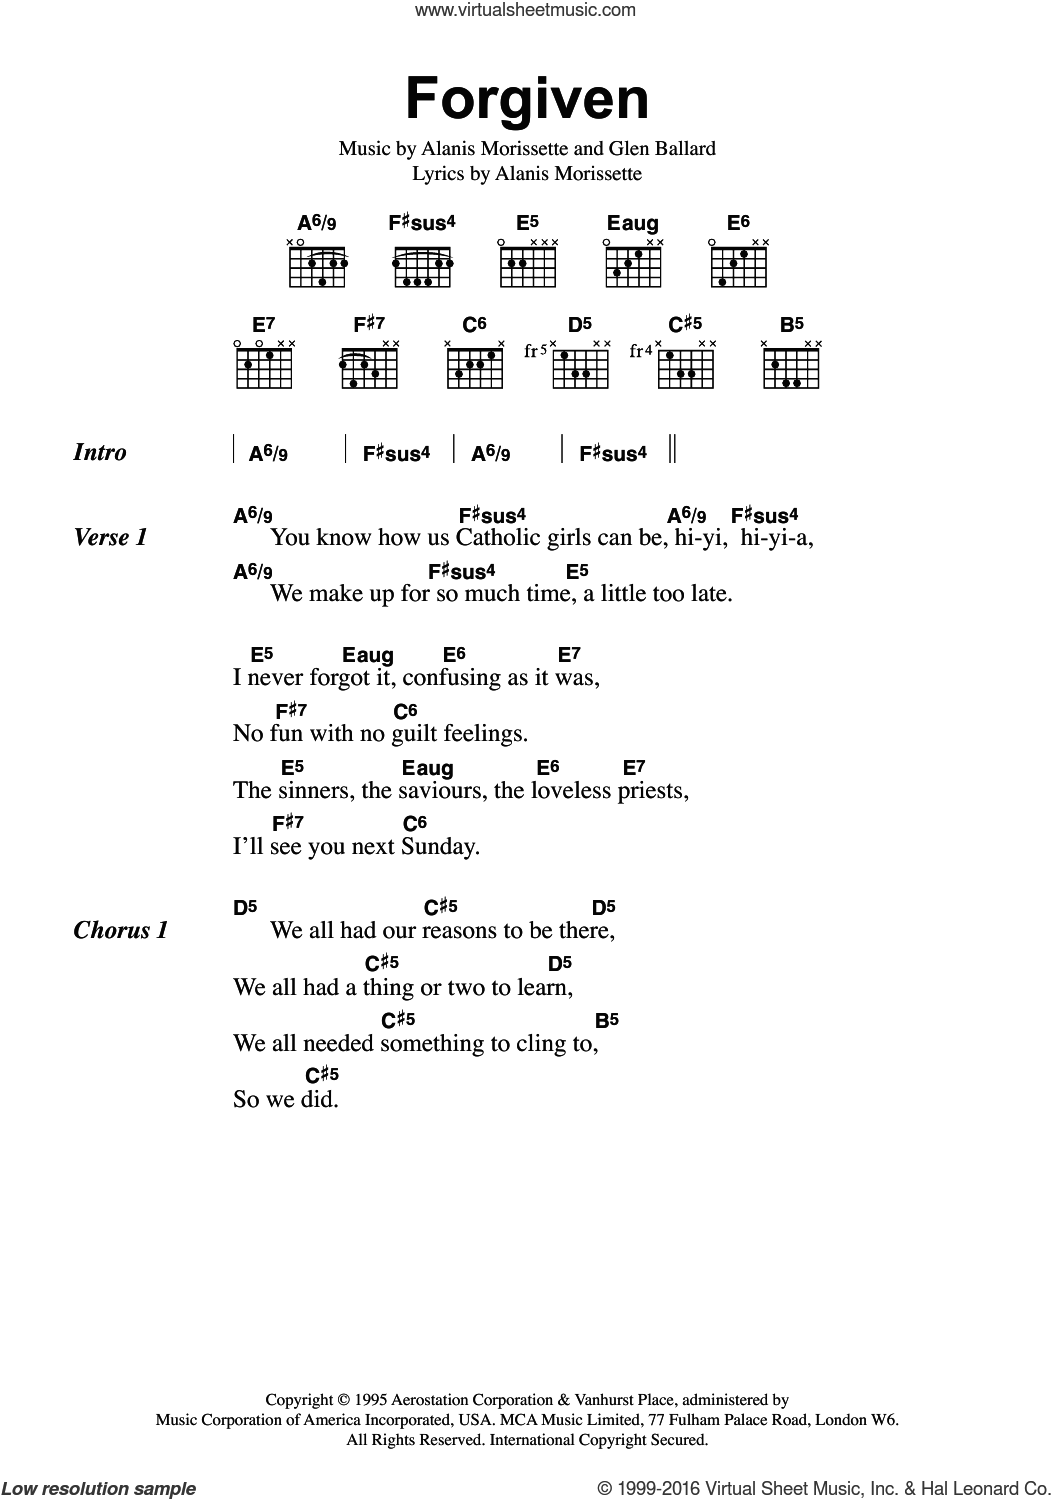 Forgiven sheet music for guitar (chords) by Alanis Morissette and Glen Ballard, intermediate skill level